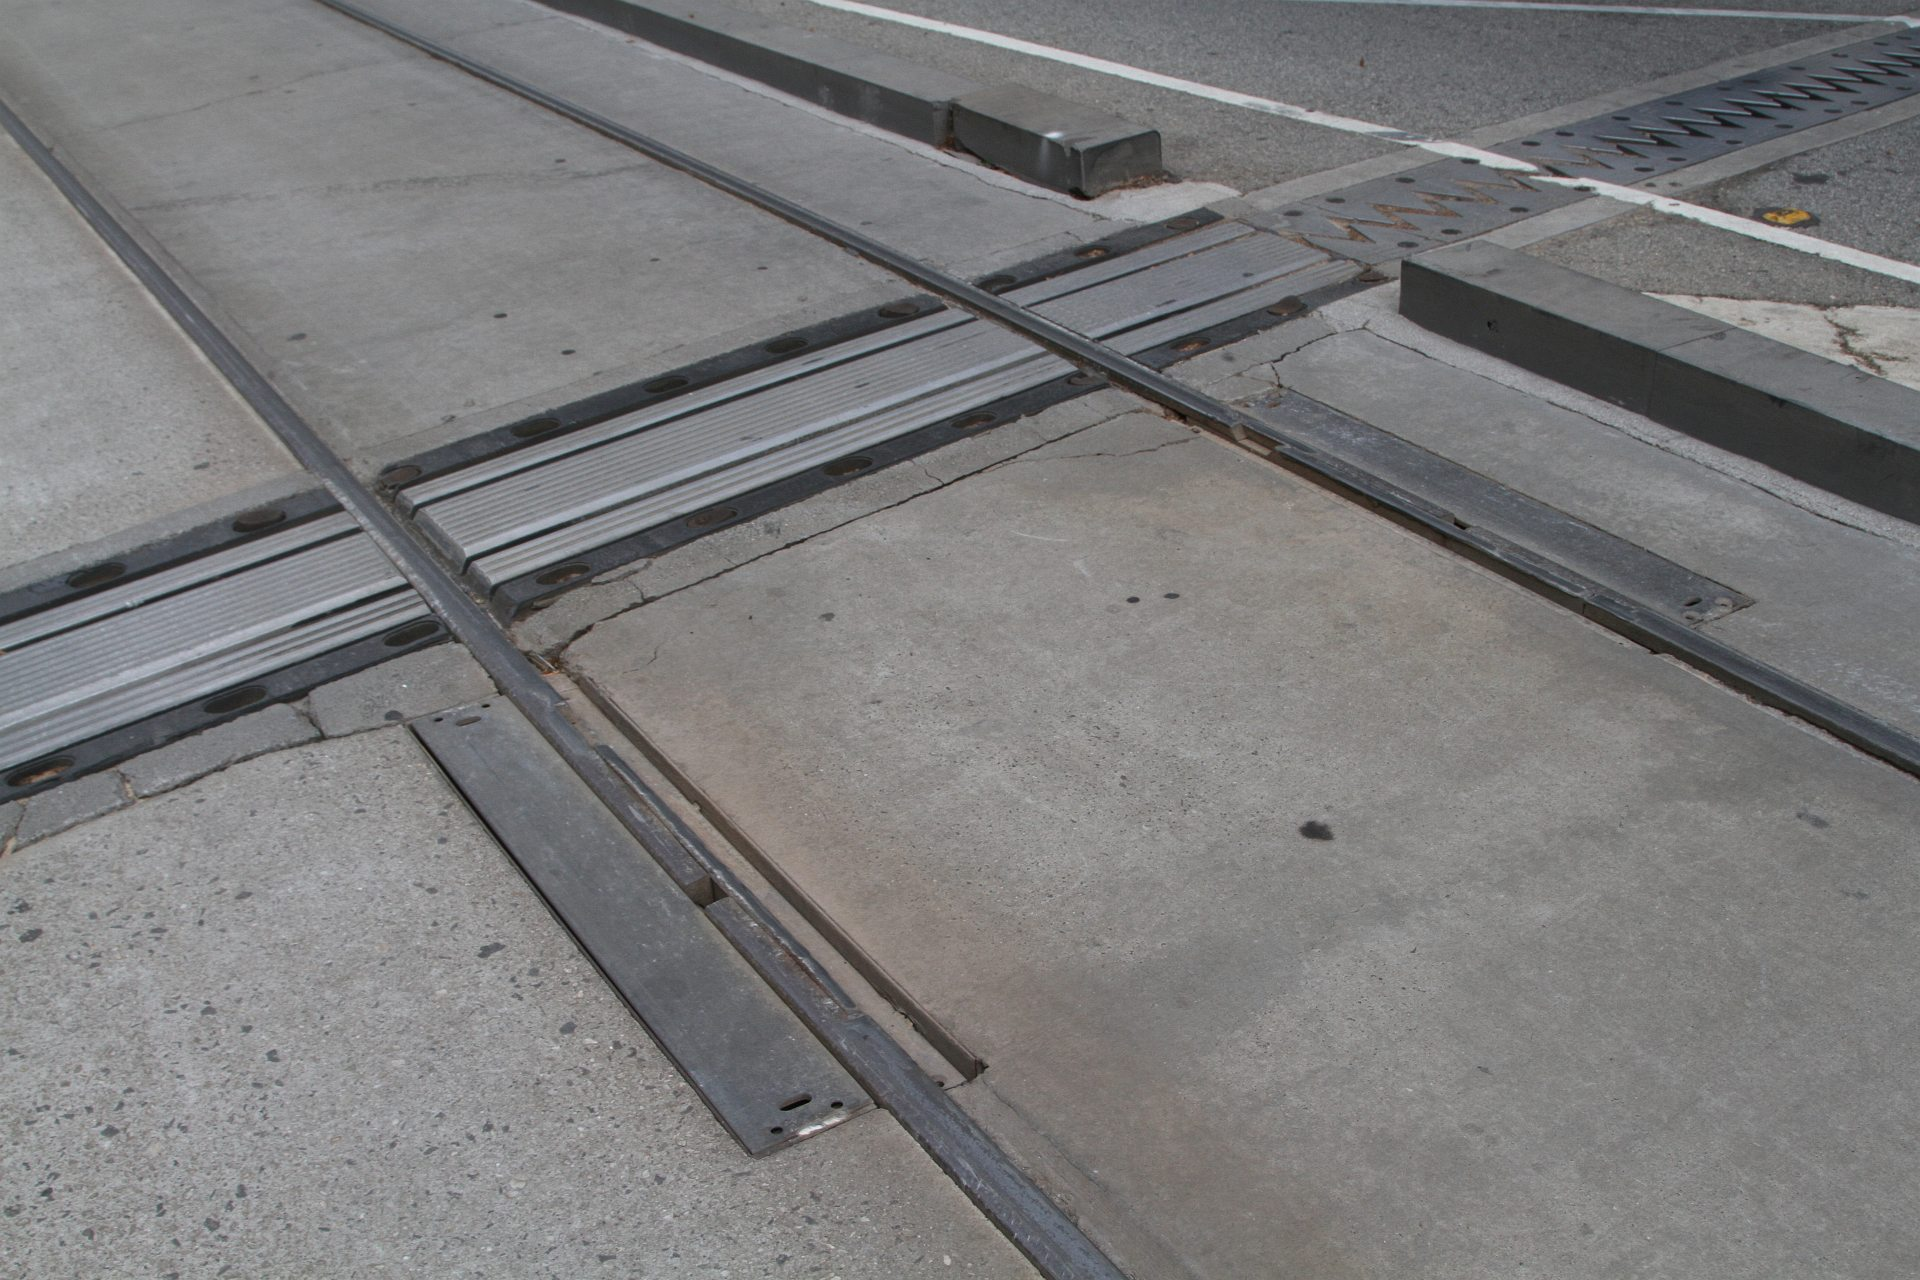 Expansion joints in the trams tracks across the Collins Street